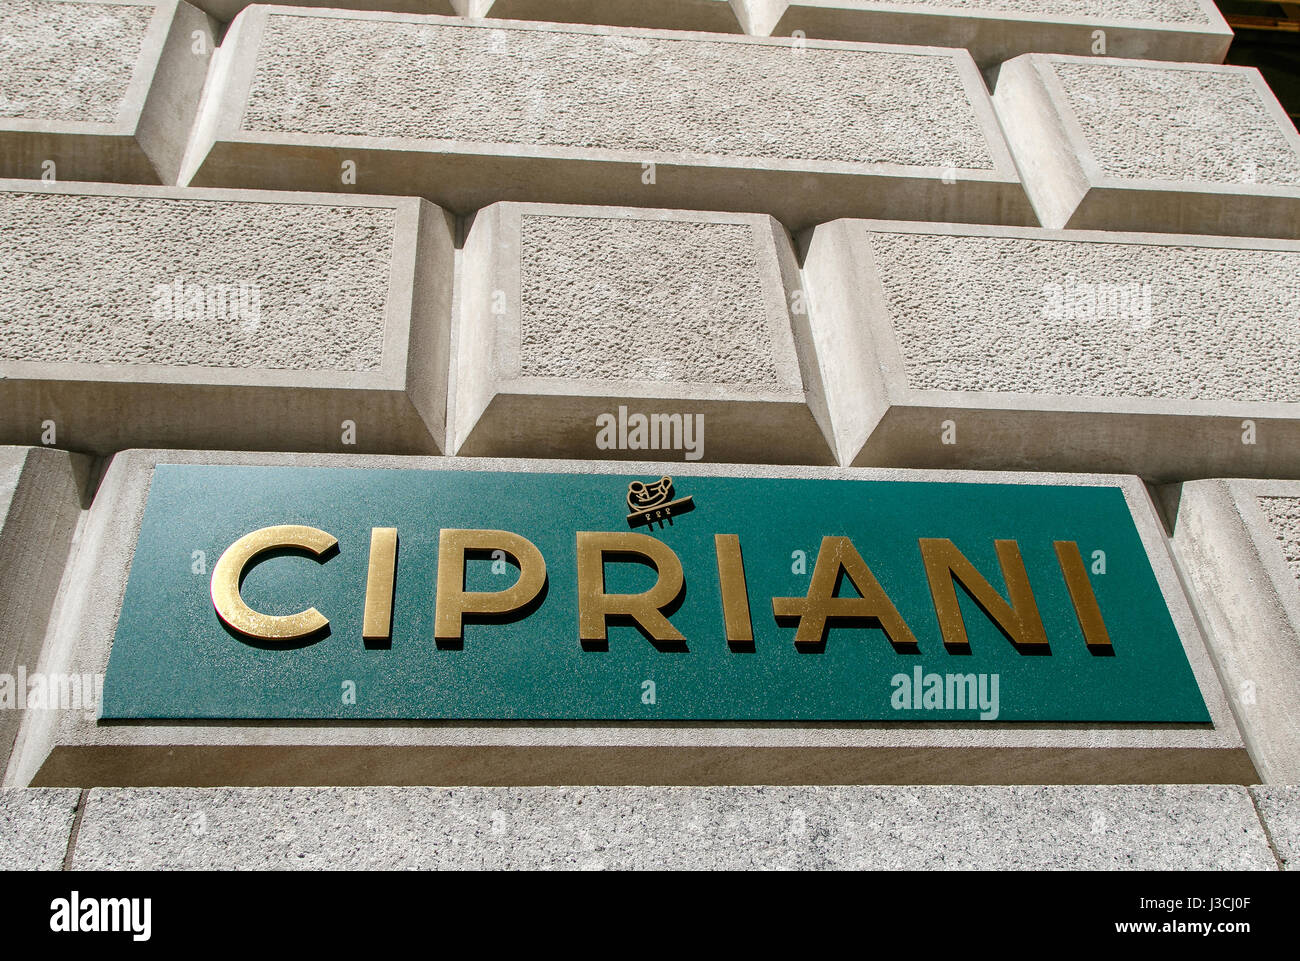 cipriani-restaurant-sign-on-a-stone-wall